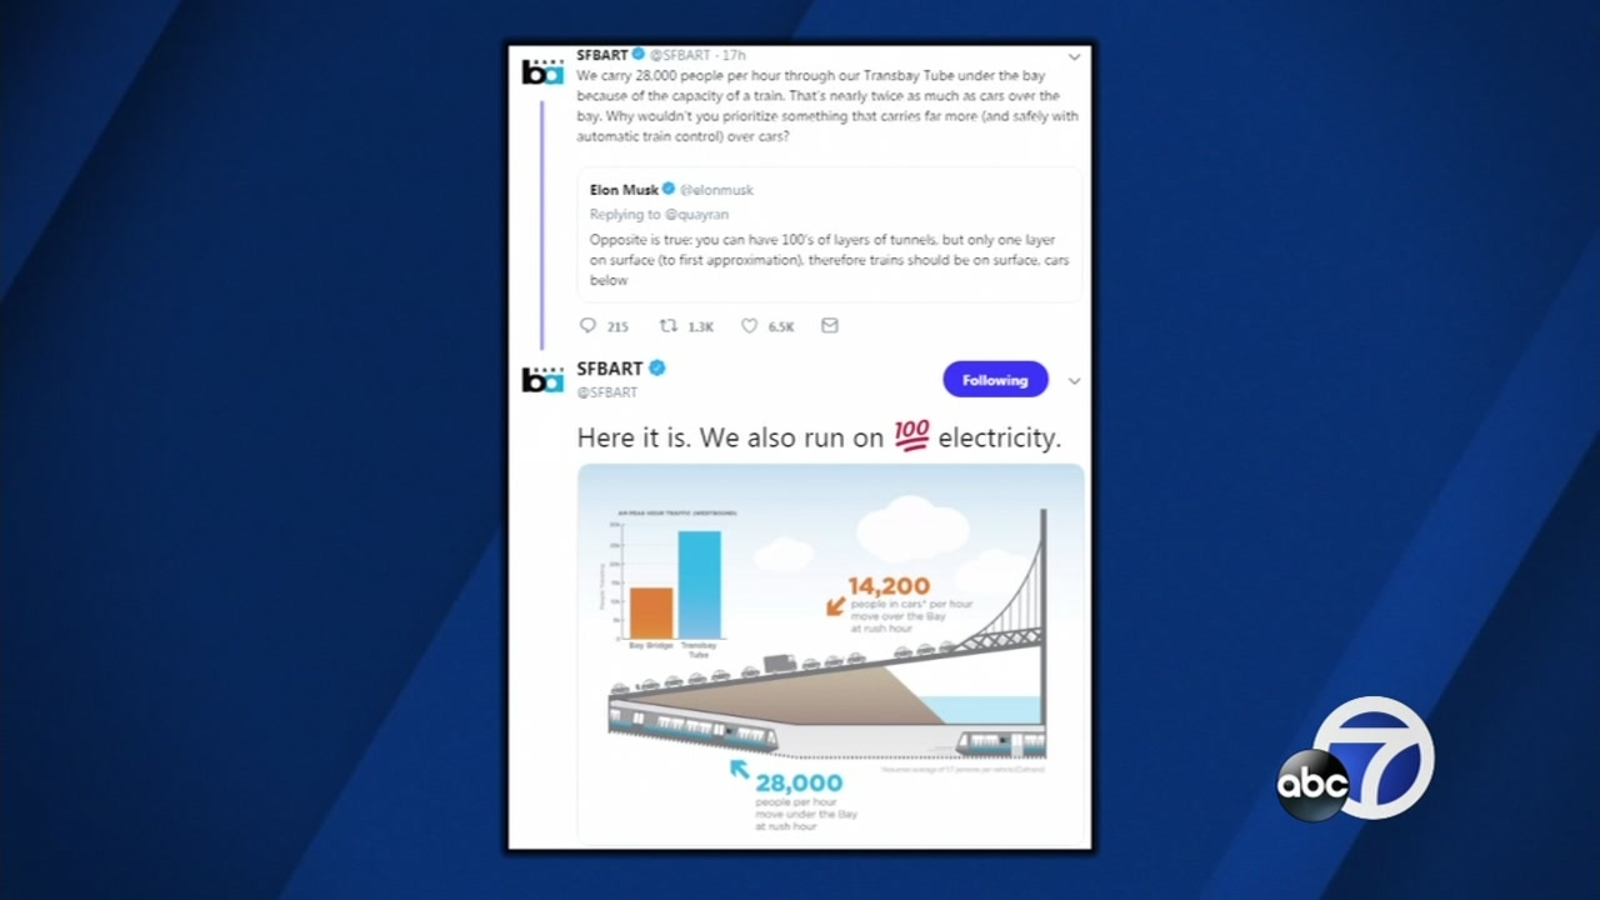 It's a tunnel tussle, BART takes on Elon Musk on Twitter